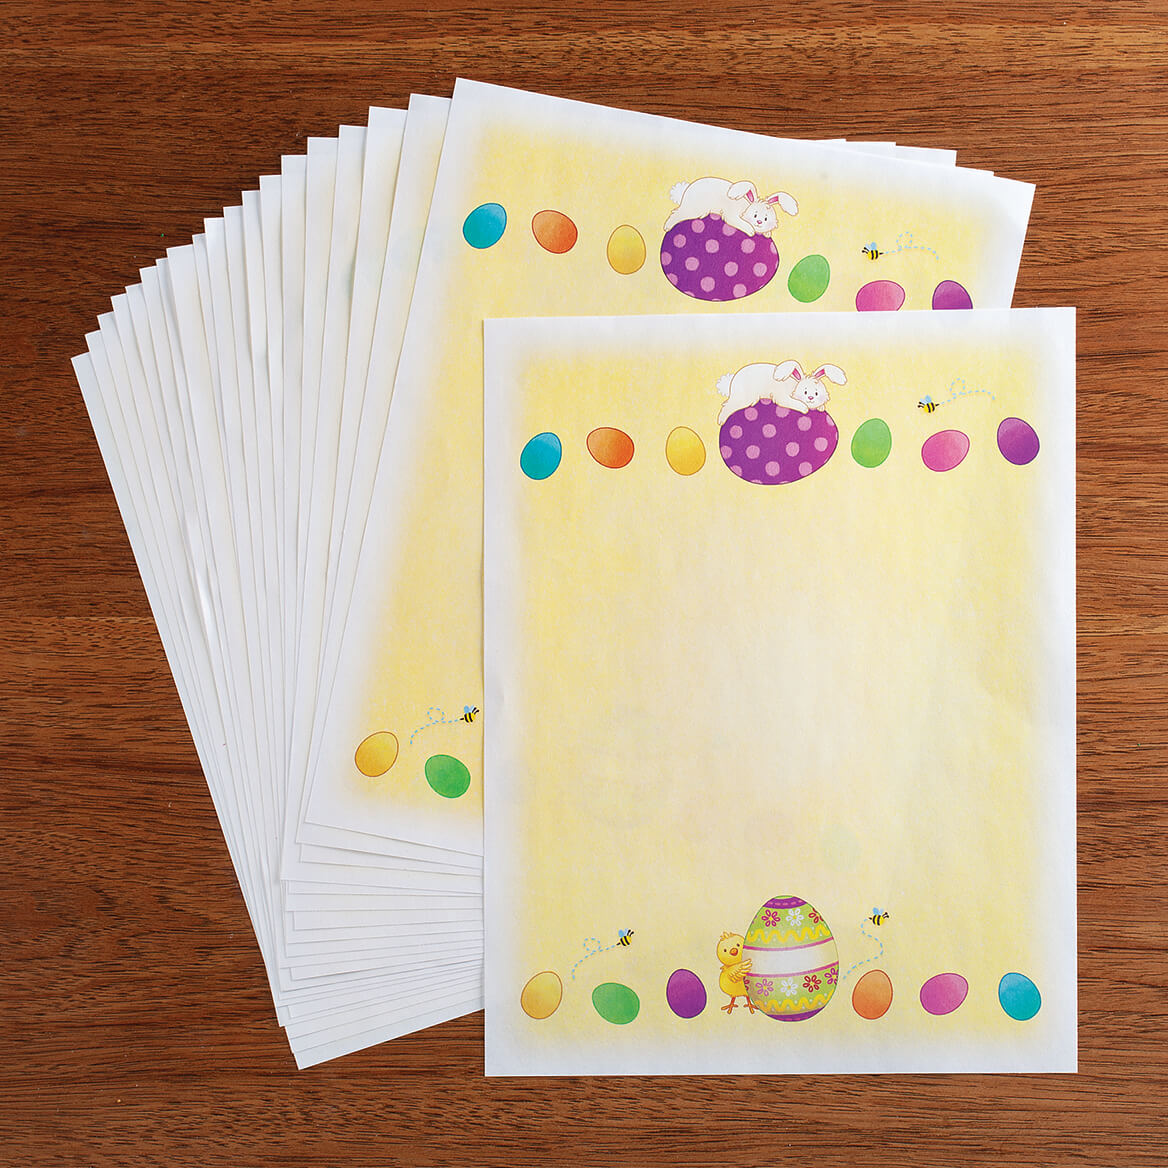 Children's Easter Stationery Sheets, Set of 20-370647